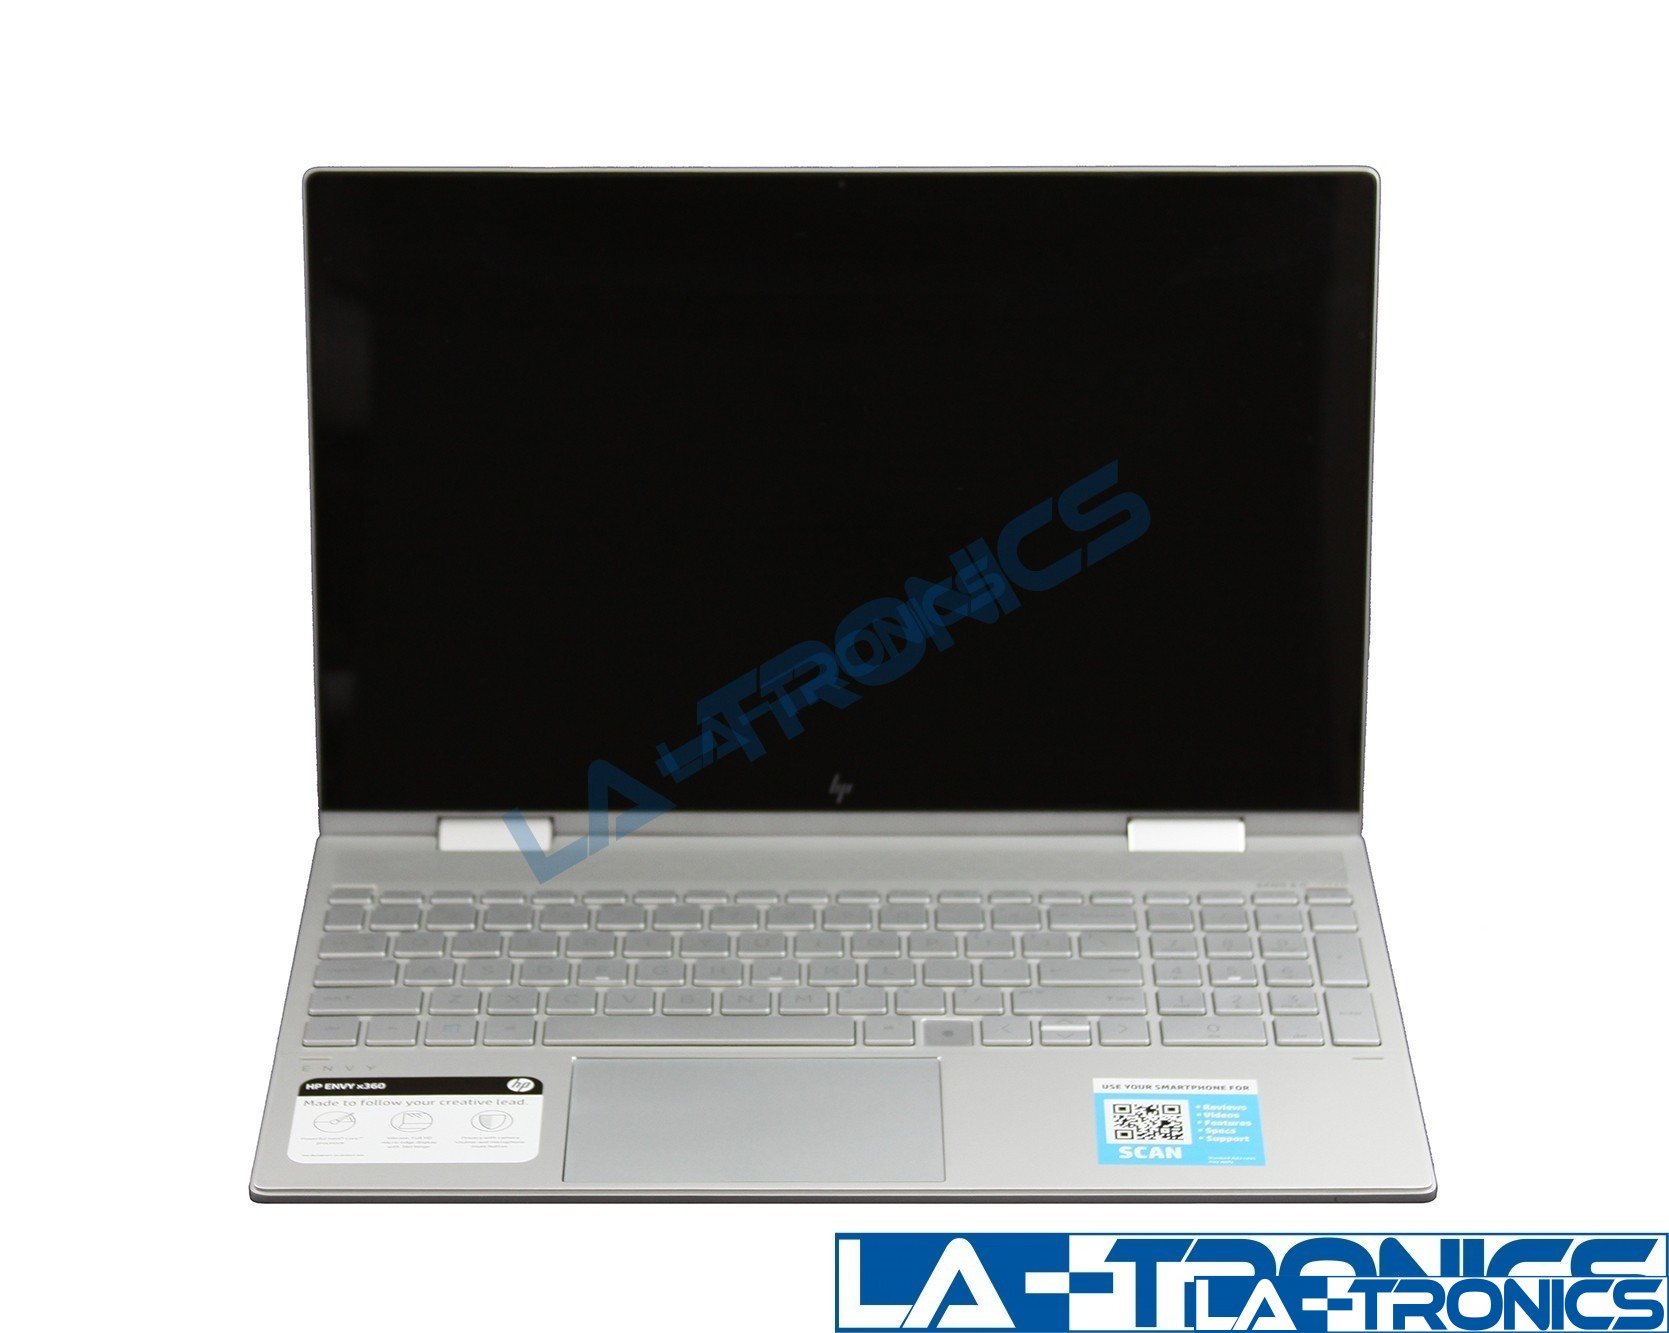 HP ENVY x360 15m-ed0013dx Laptop 15.6